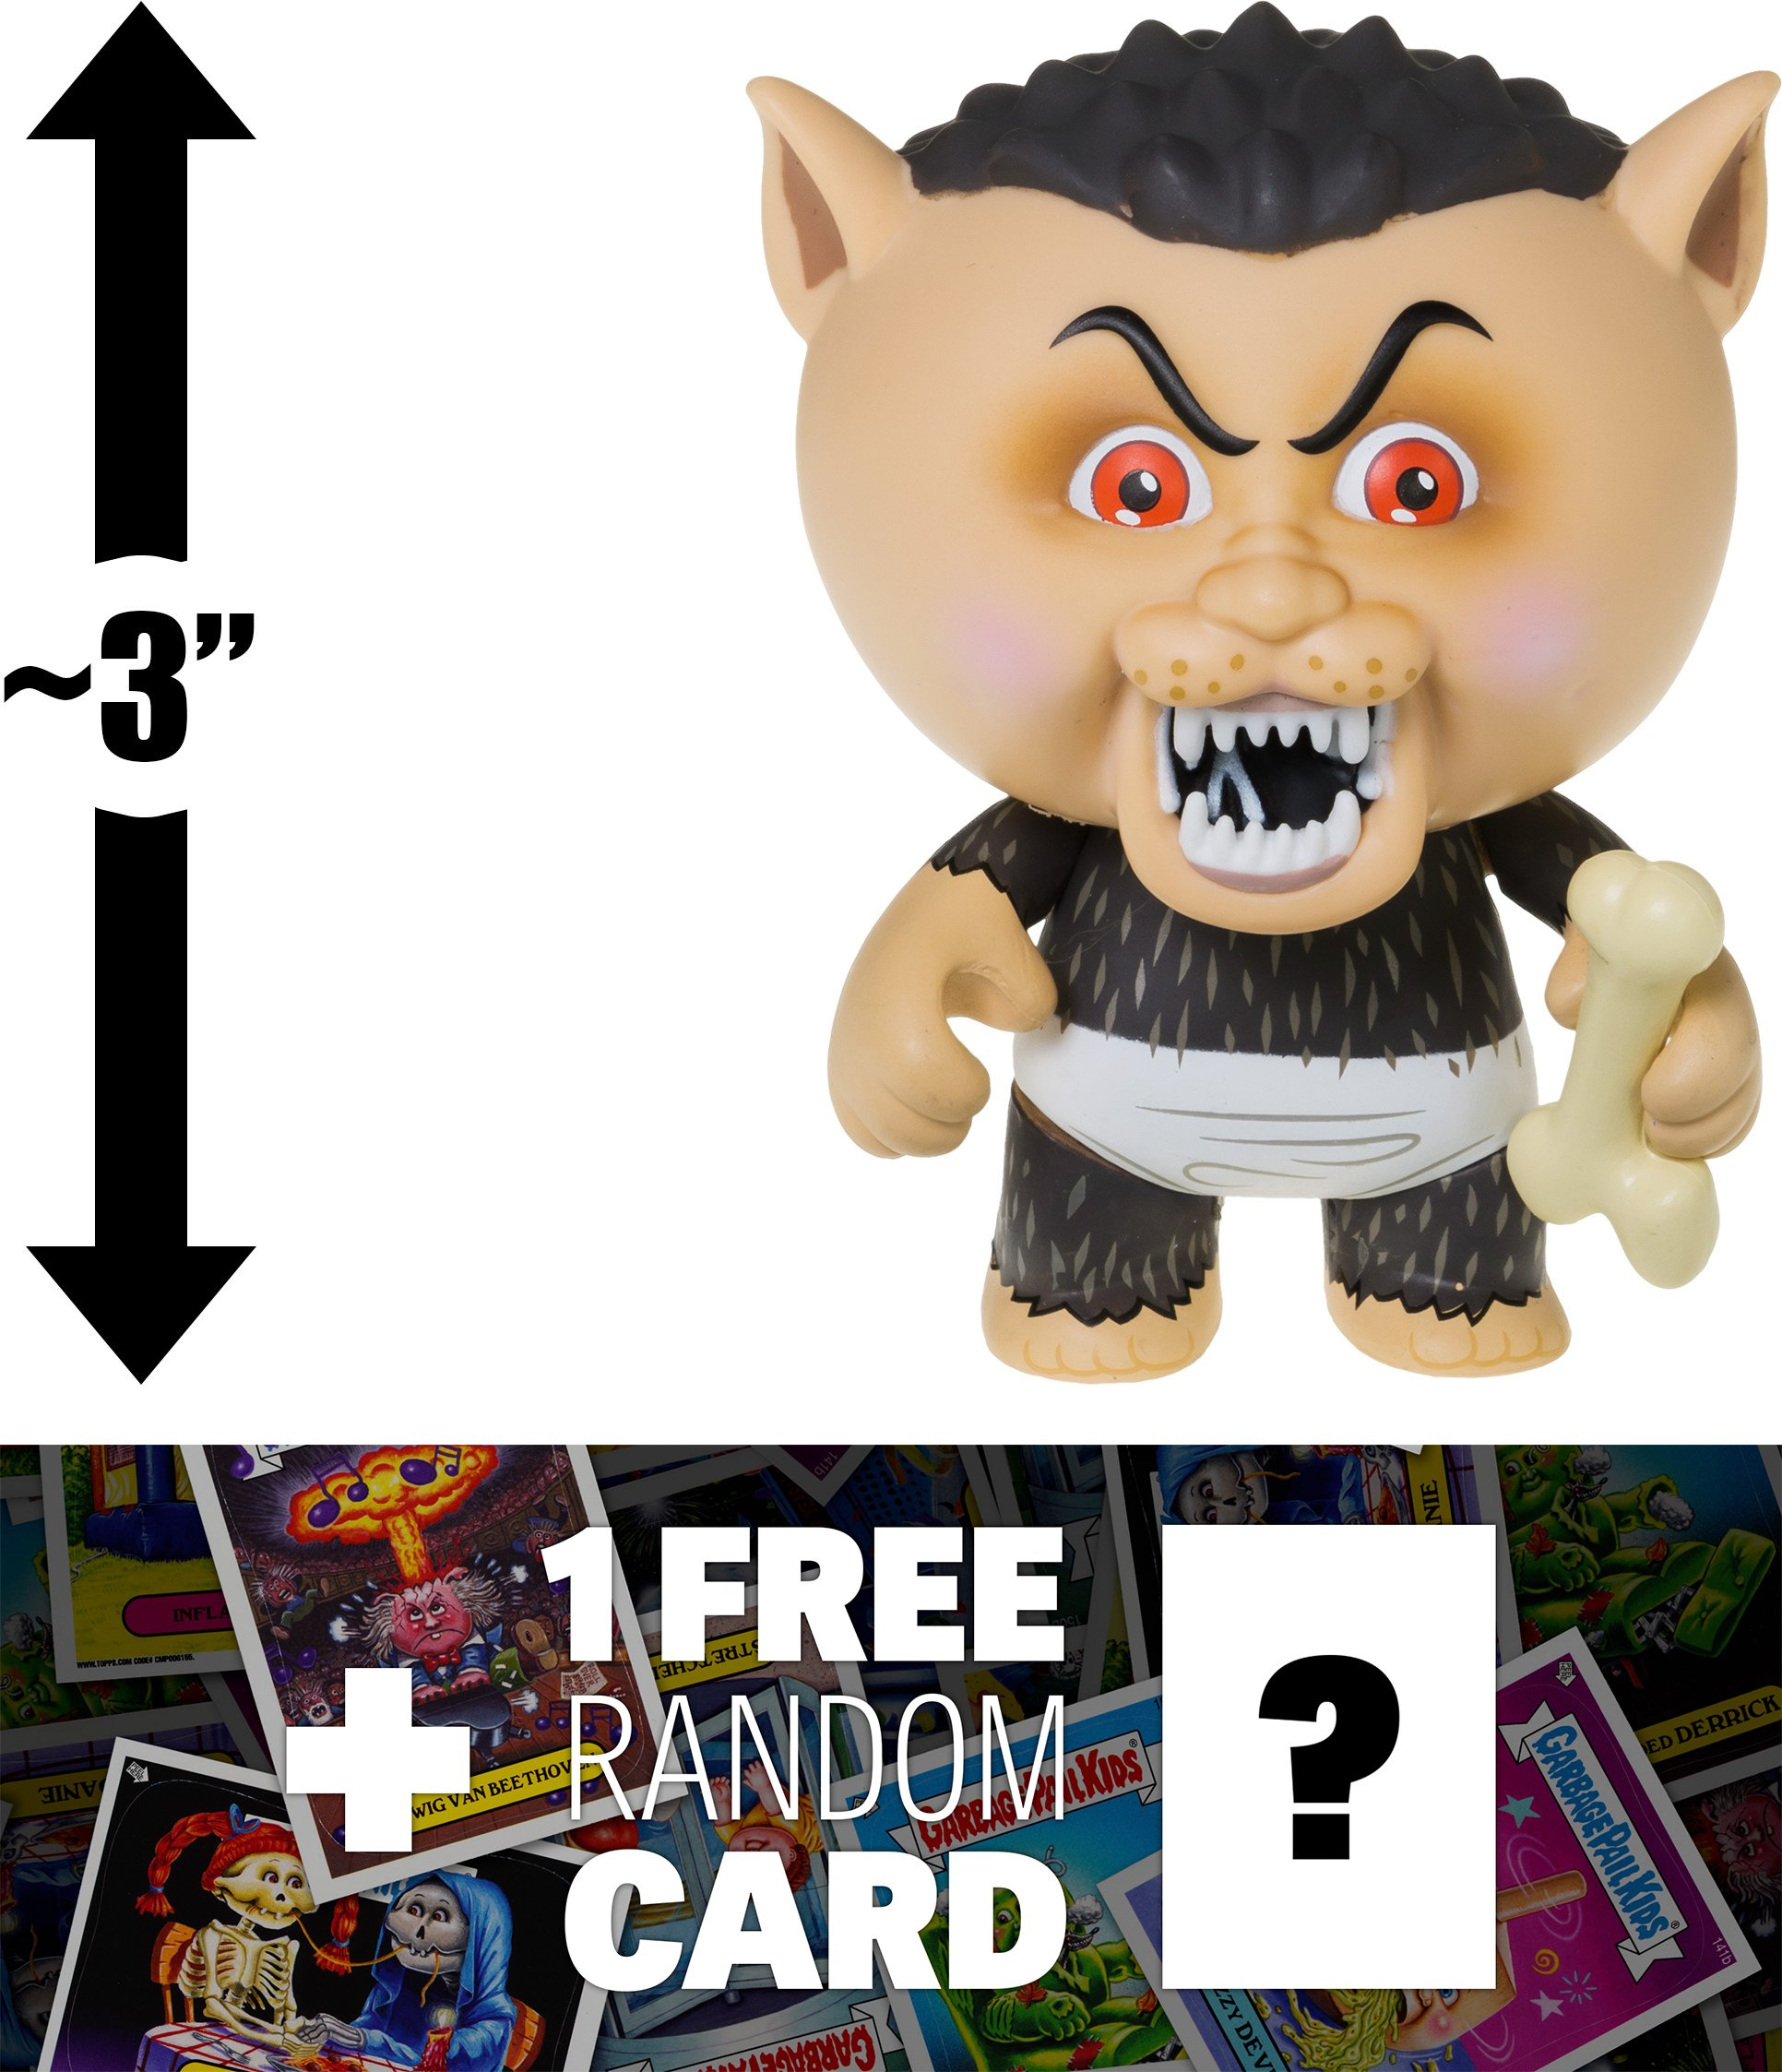 Eerie Eric: ~3'' Garbage Pail Kids x Funko Mystery Minis Mini-Figure Series #2 + 1 FREE GPK Trading Card/Sticker Bundle (108454) by Garbage Pail Kids (Image #1)